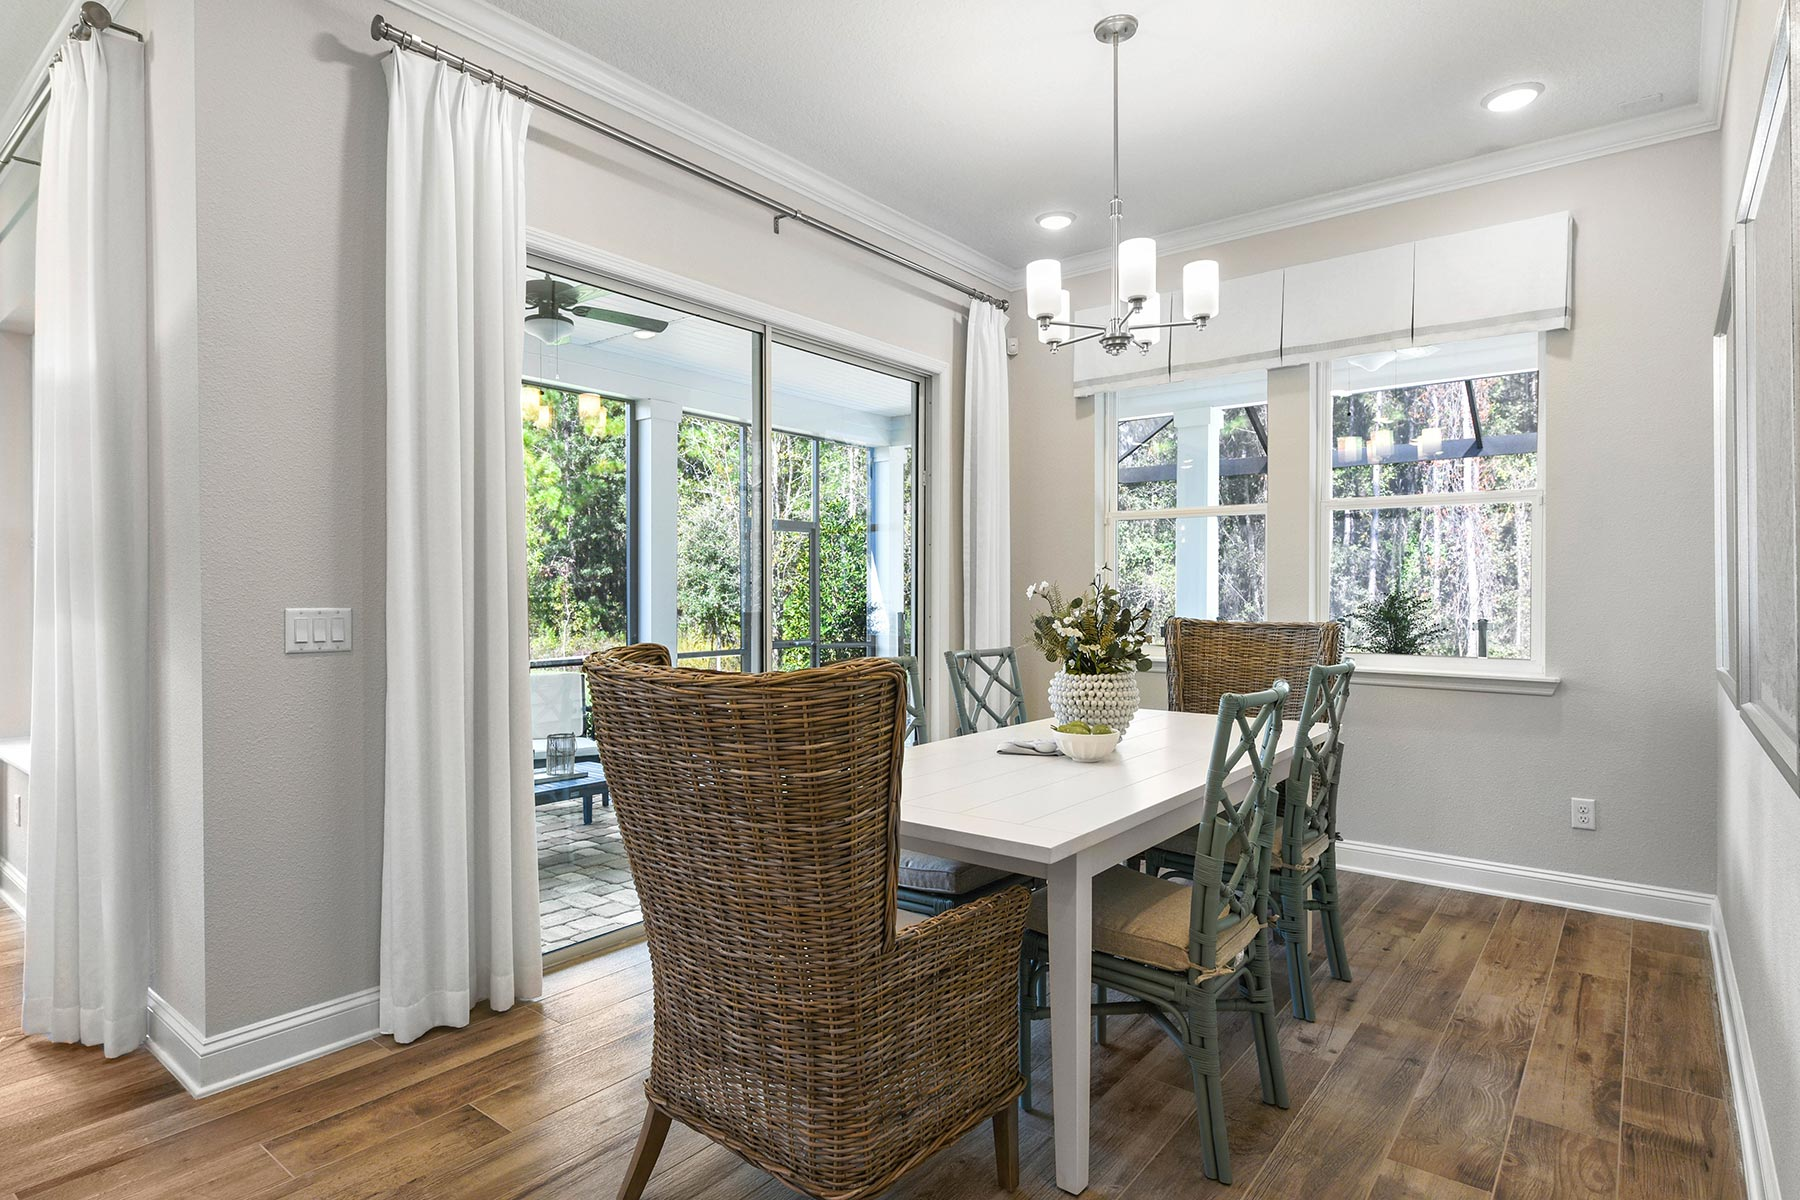 Court Plan Dining at RiverTown - WaterSong in St. Johns Florida by Mattamy Homes